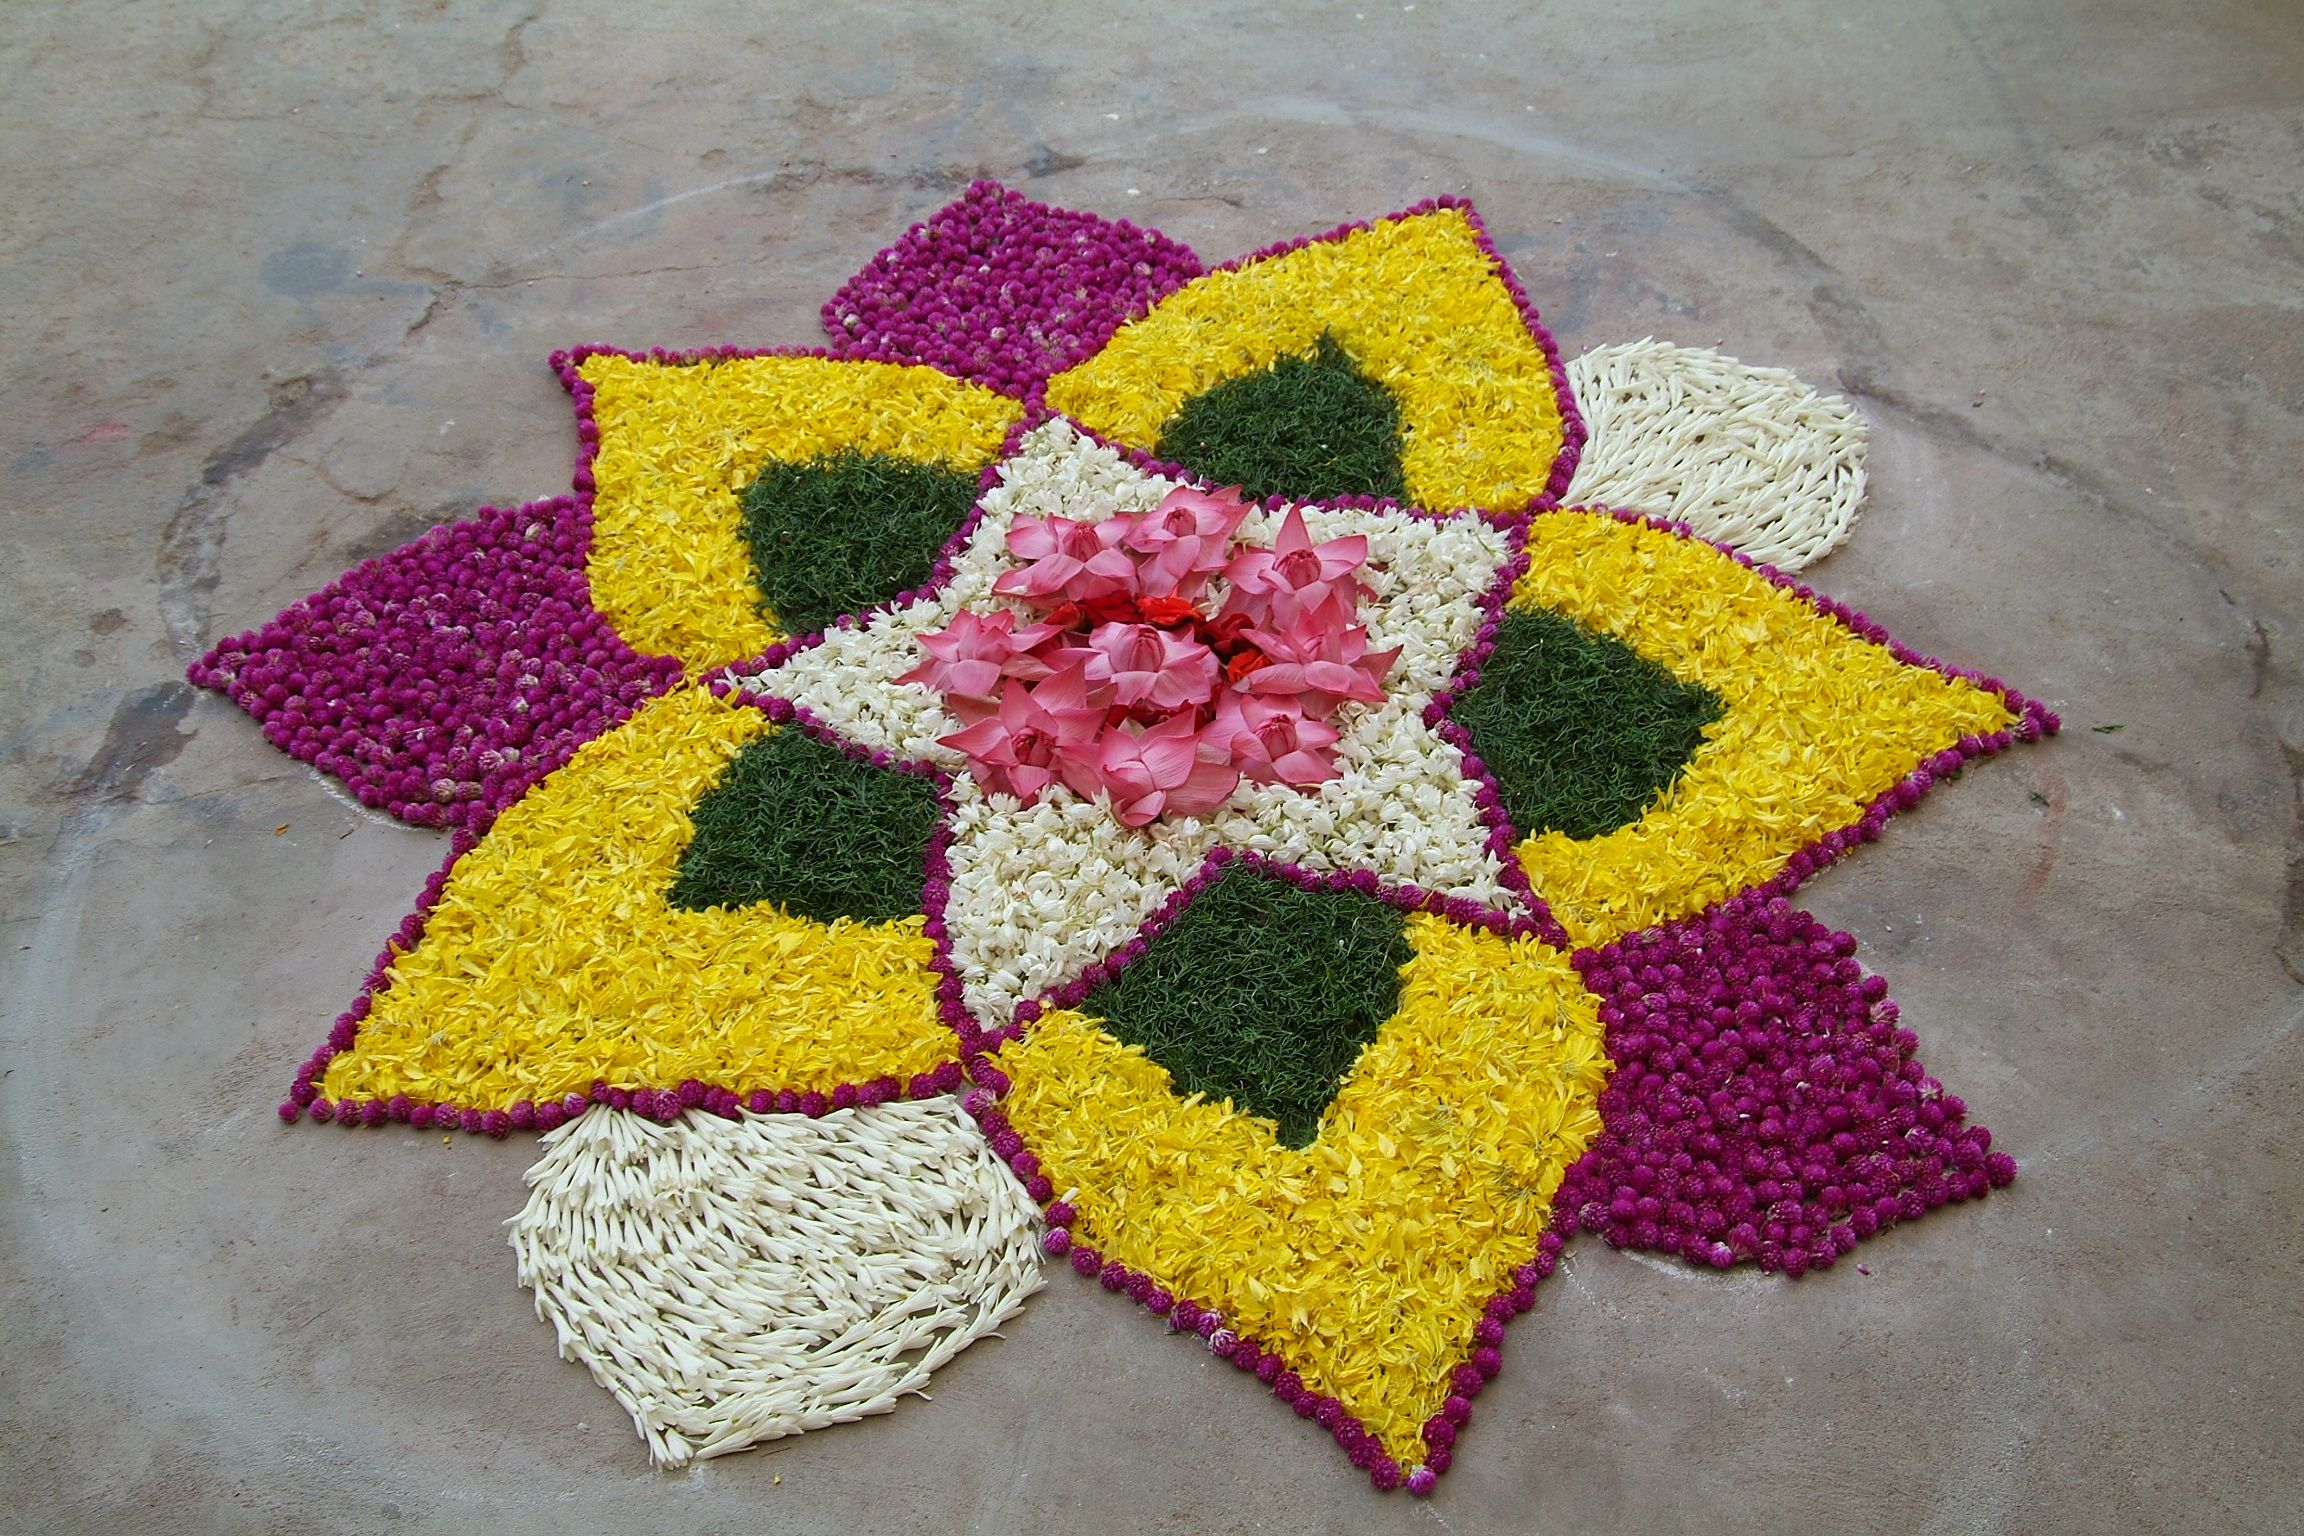 Basmati Rice : Make it Perfect. Every time. - Ayurveda | Everyday ... for Simple Rangoli Designs For Diwali With Flowers  75tgx